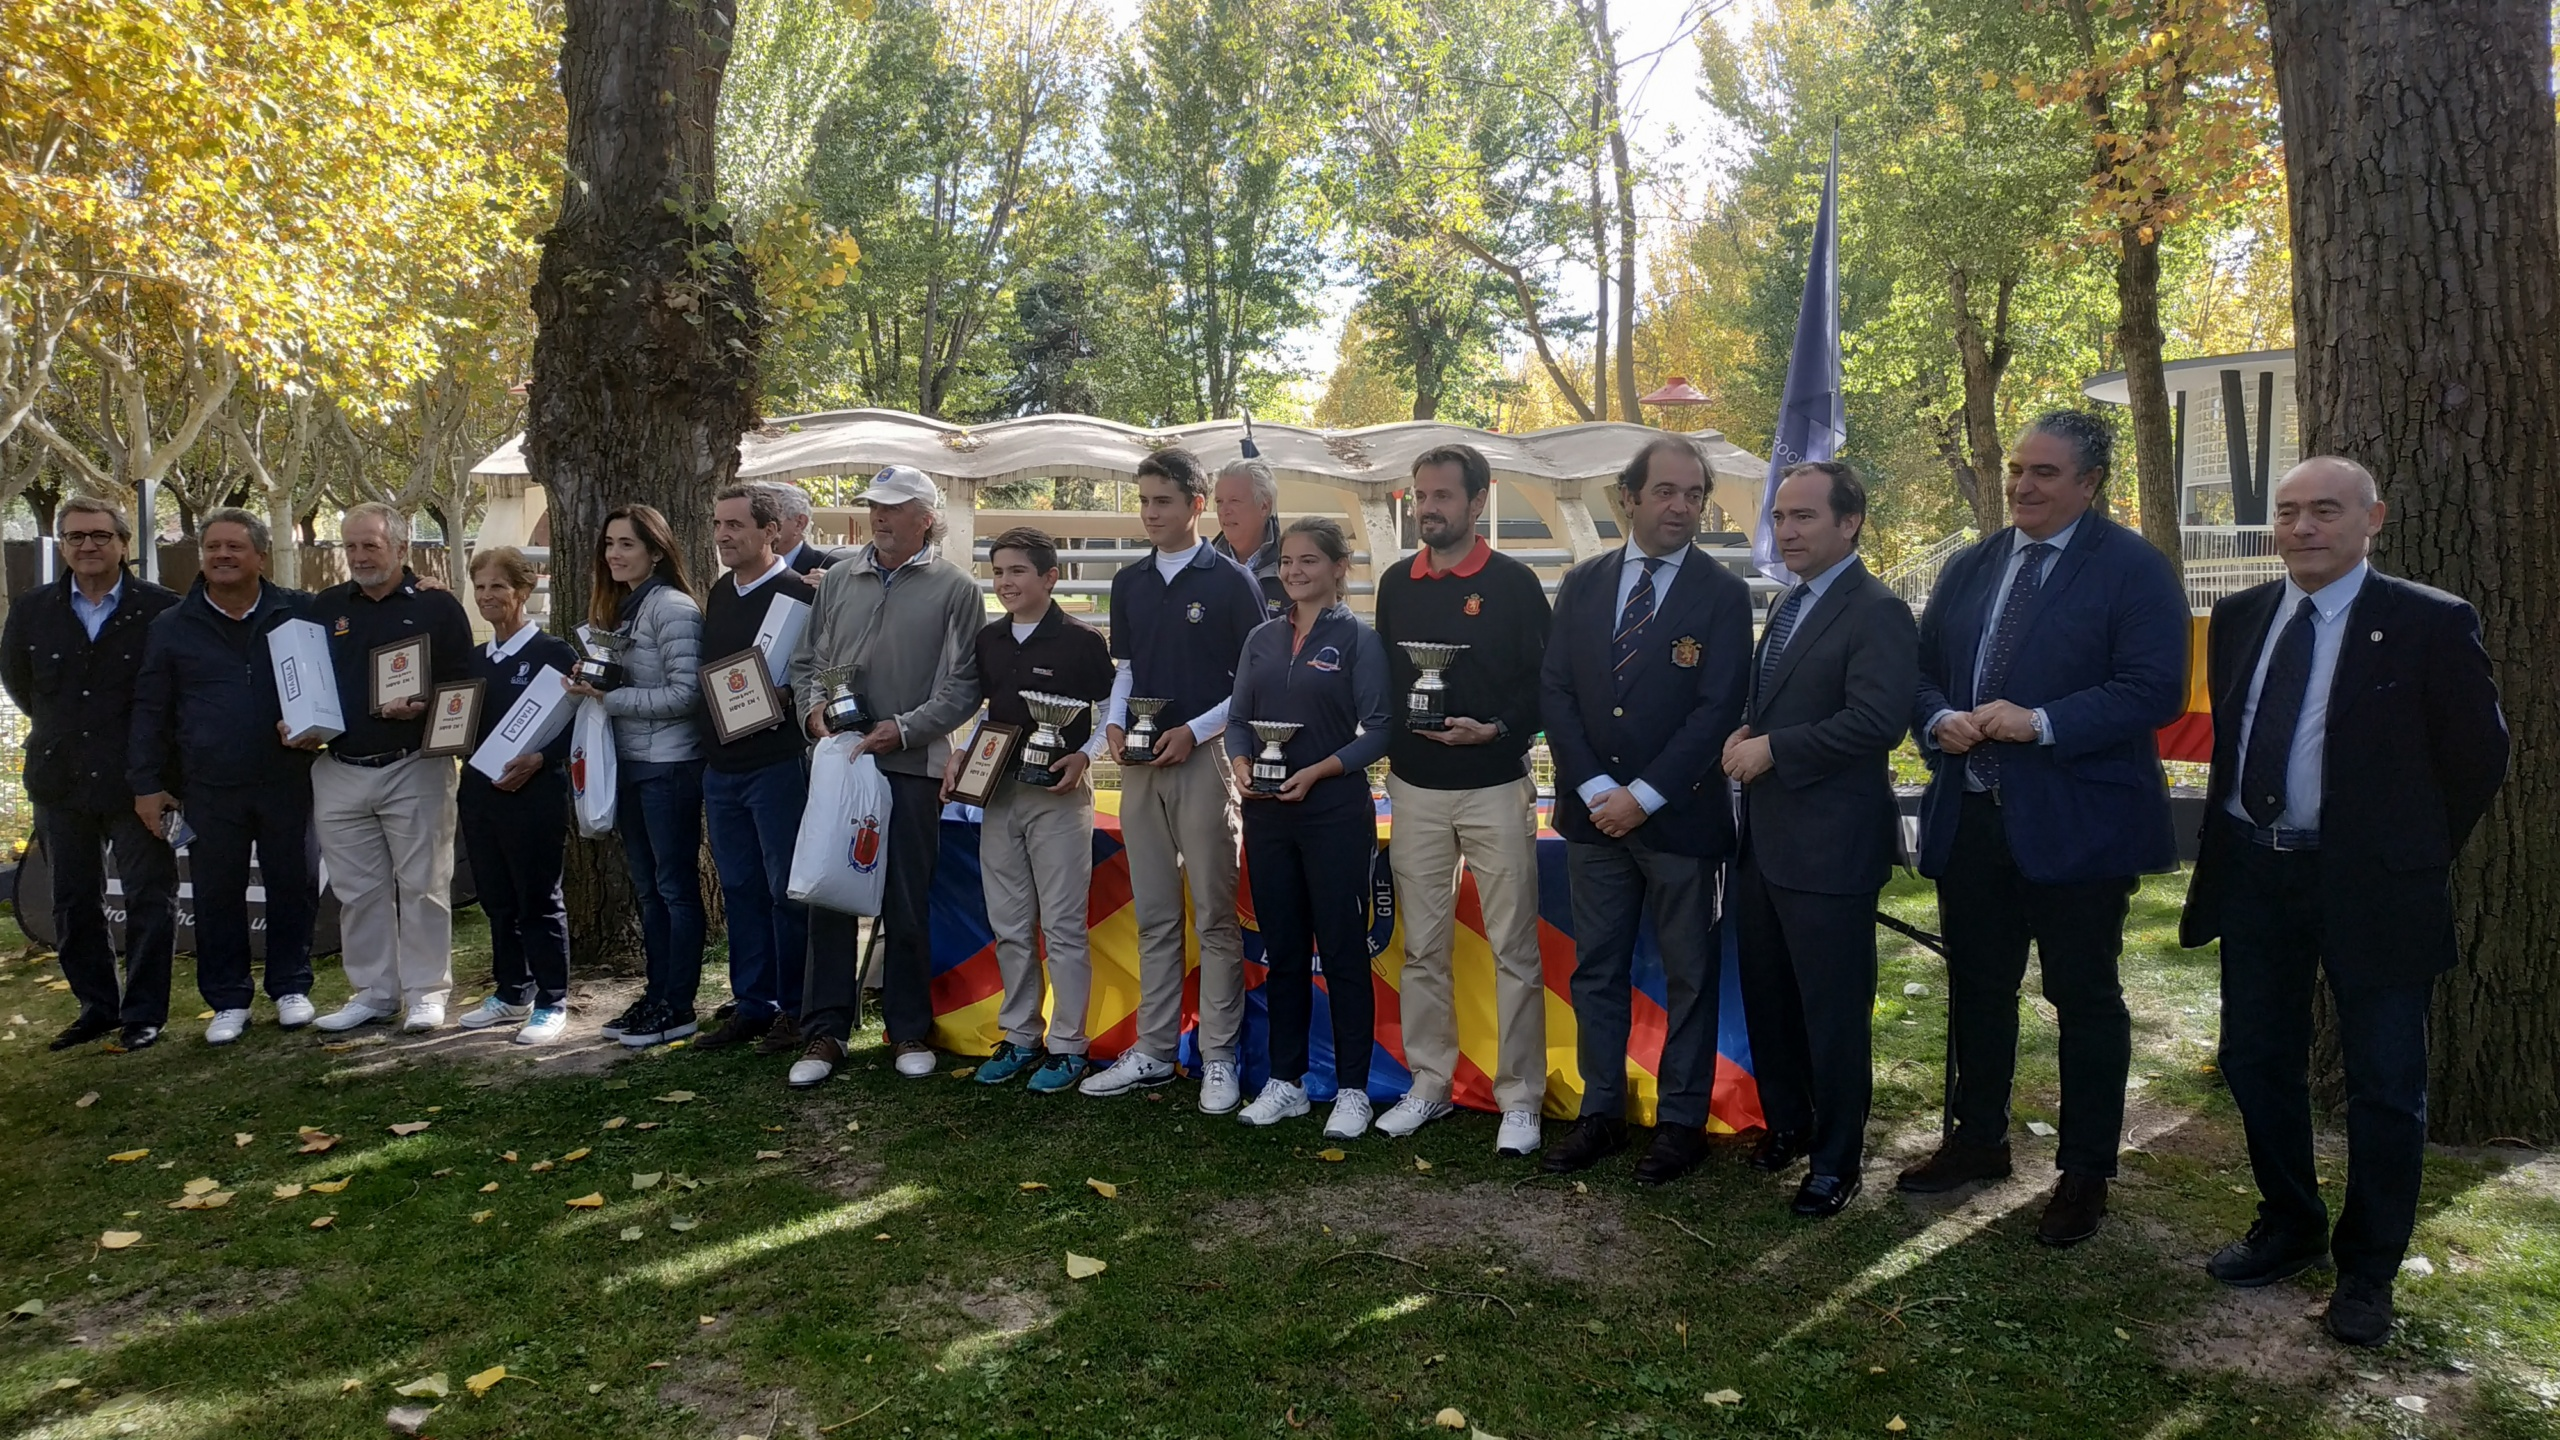 Sergio Jimenez Romero and Cristina Carlon Obregon win at Spanish Open P&P 2019